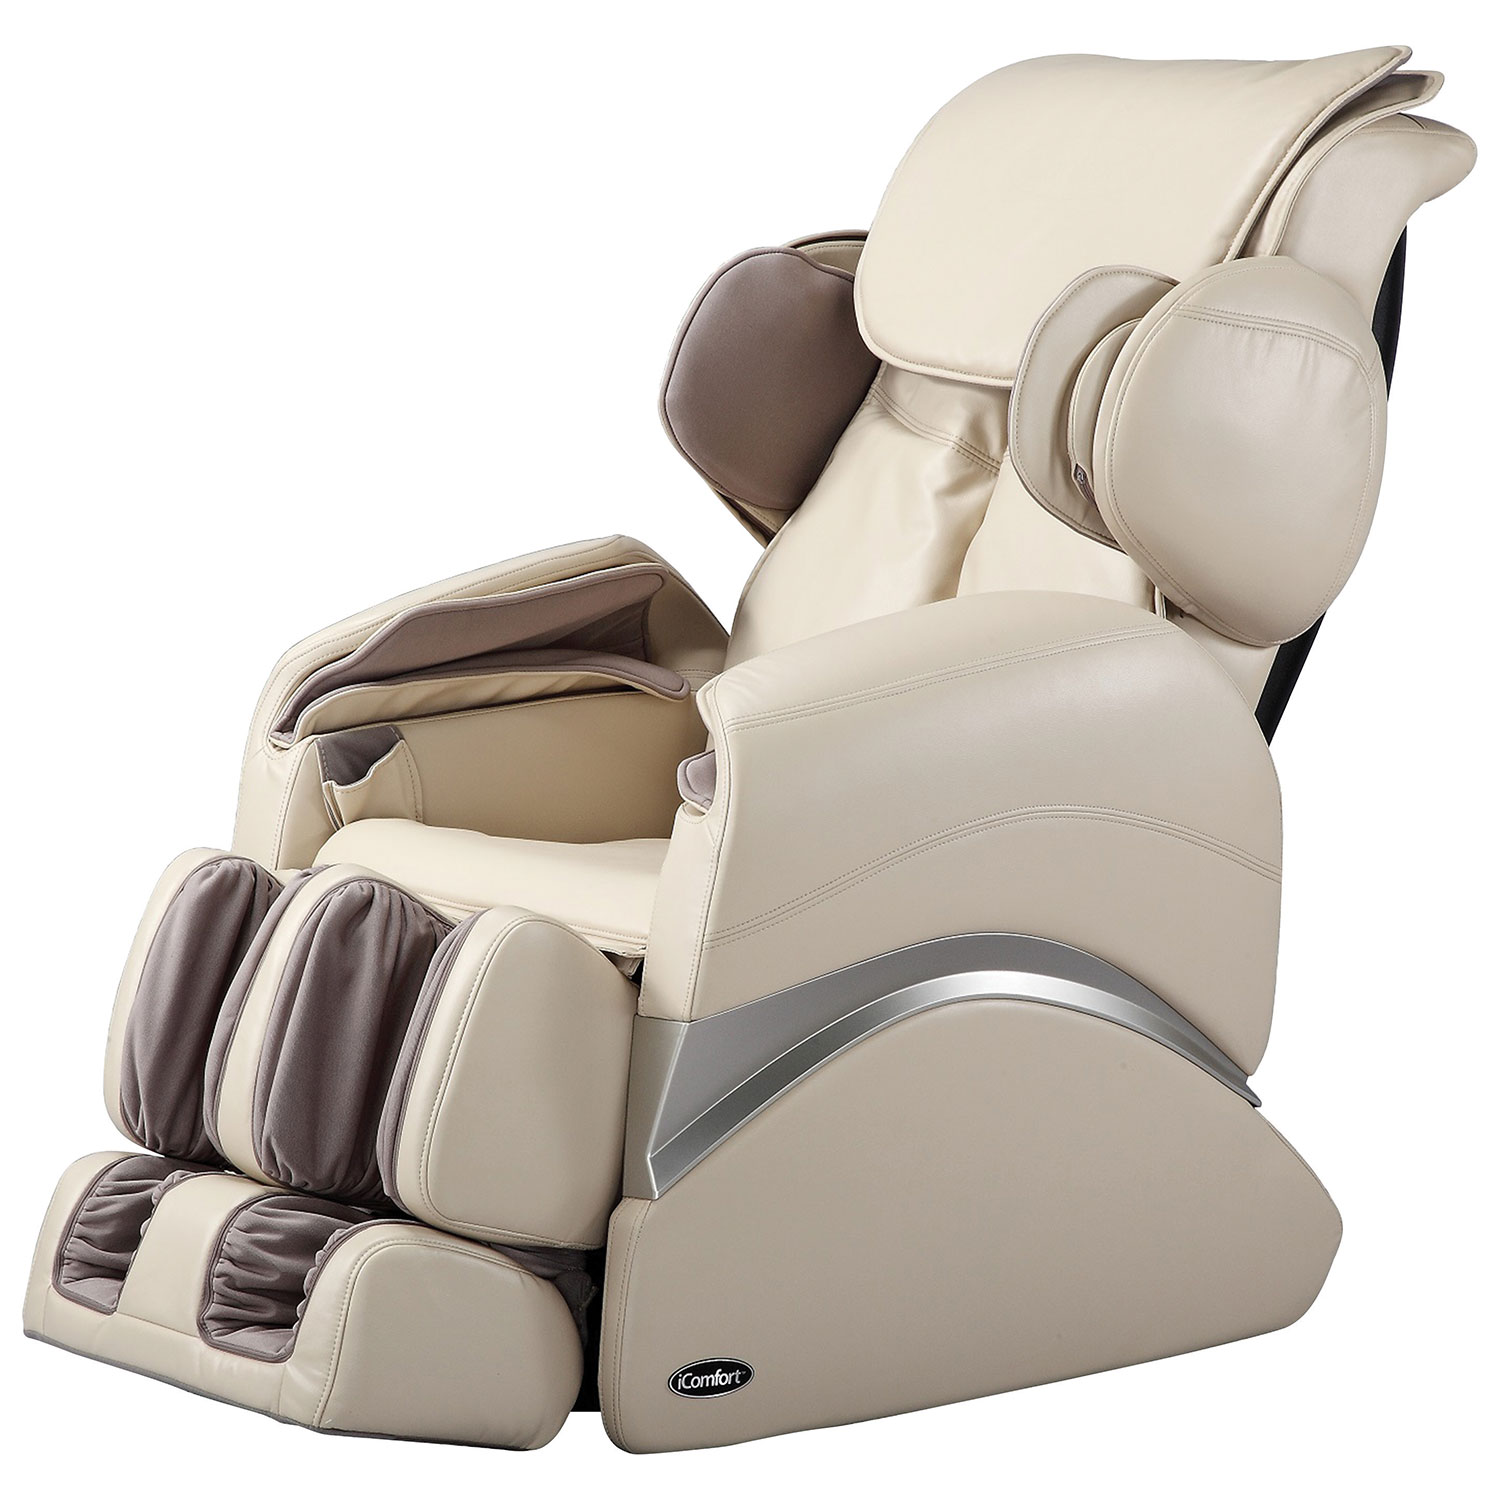 leisure rmc home massage chairs chair irest